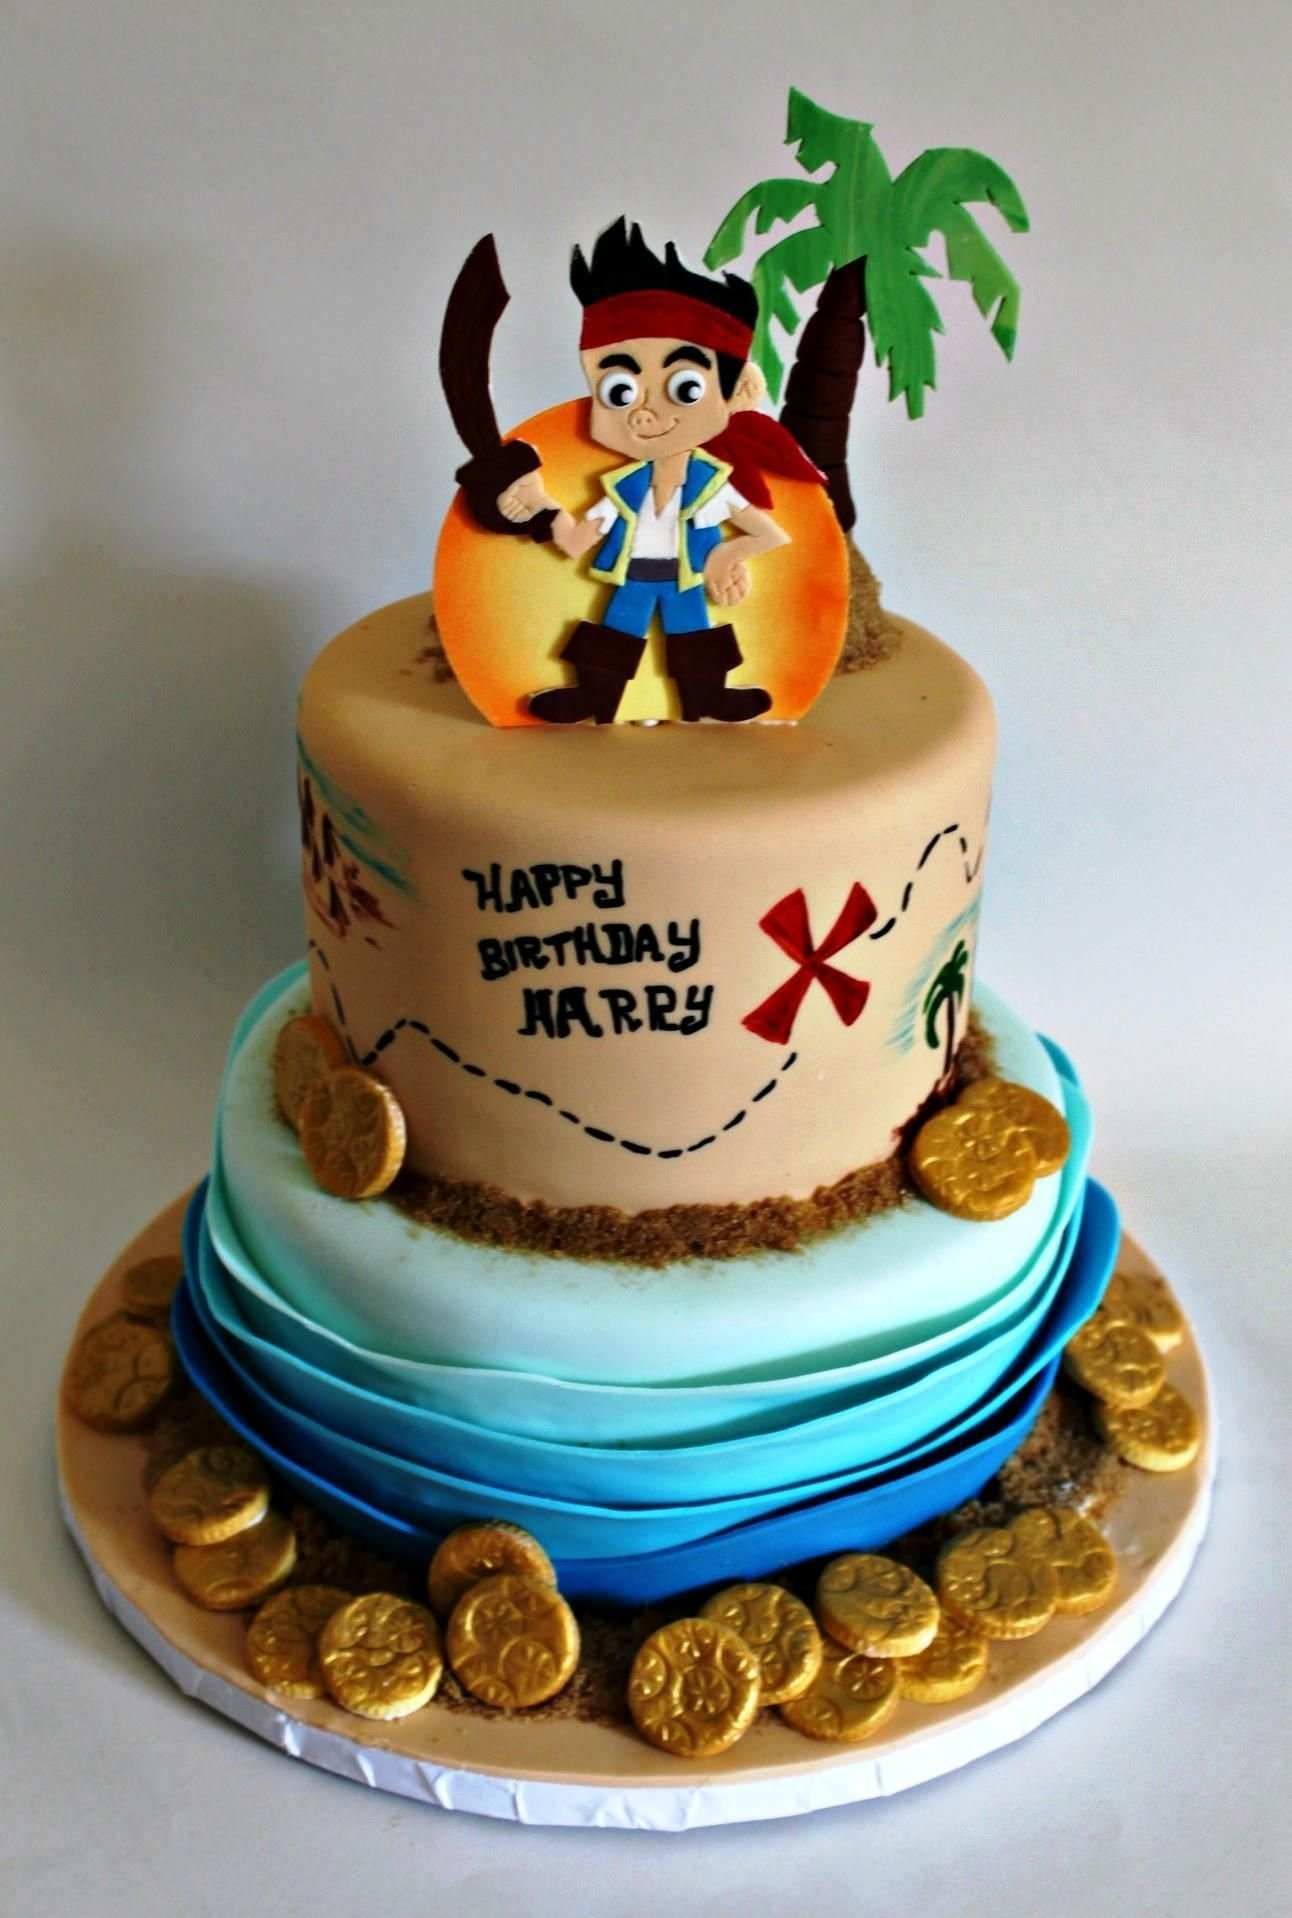 10 Nice Jake And The Neverland Pirate Cake Ideas jake and the neverland pirates party ideas buscar con google 1 2020